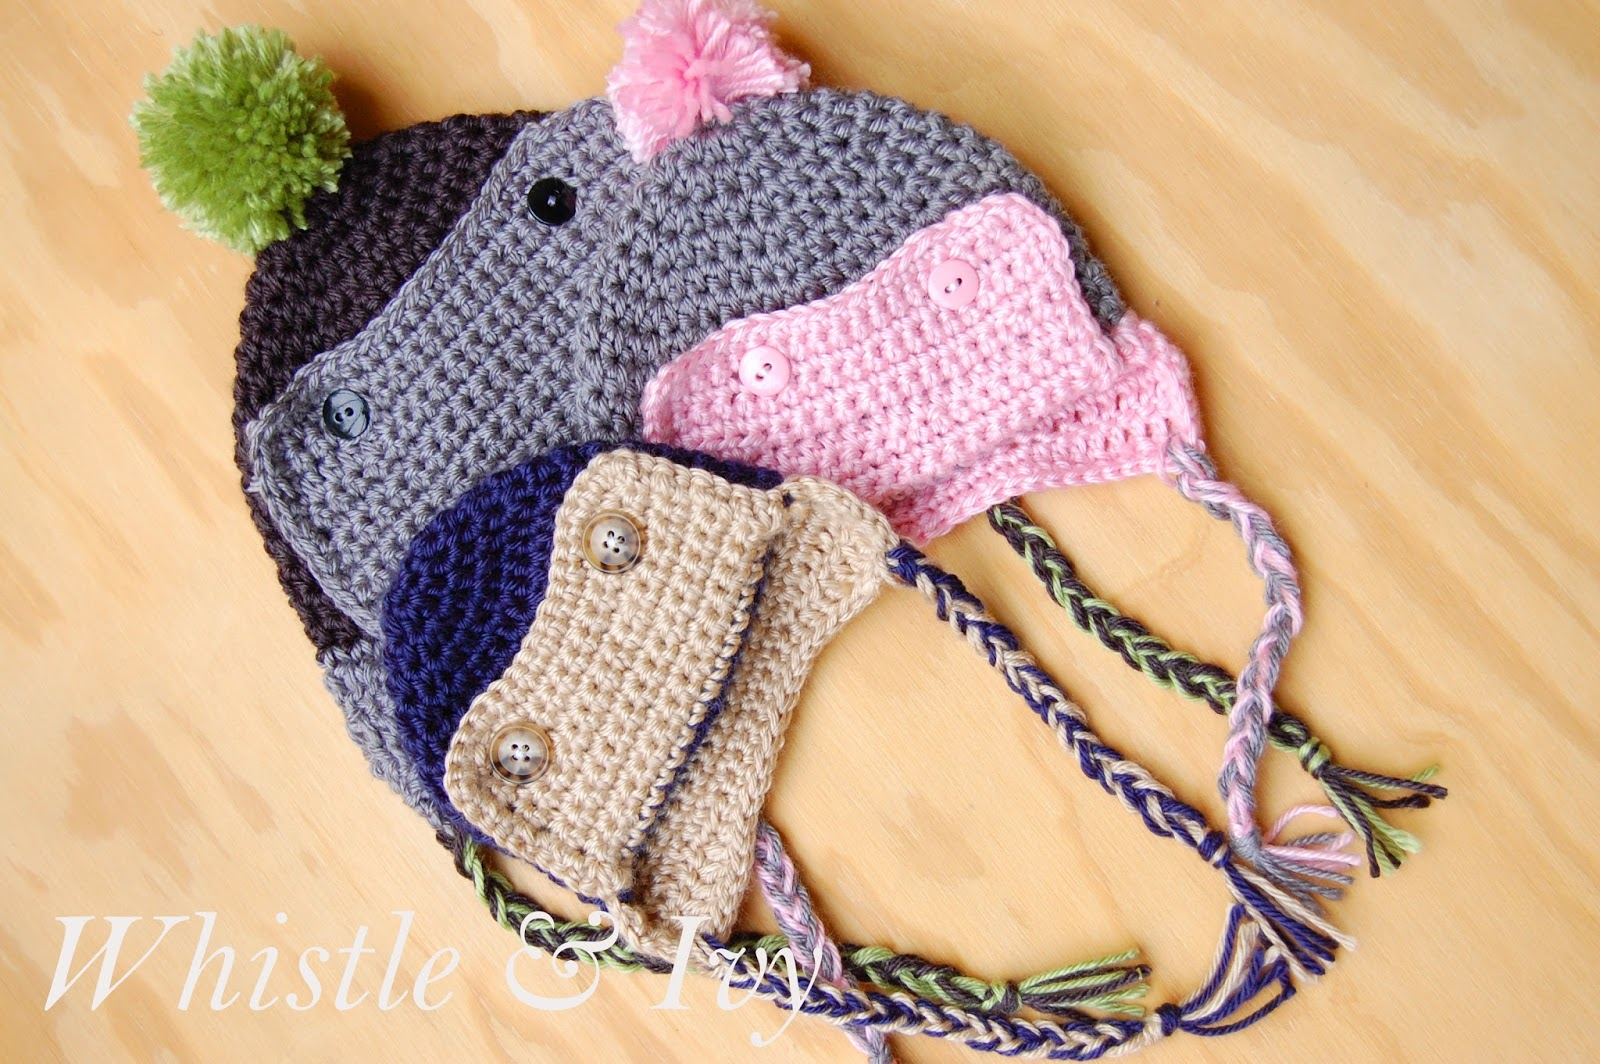 Crochet Aviator Hat - Viewing Gallery